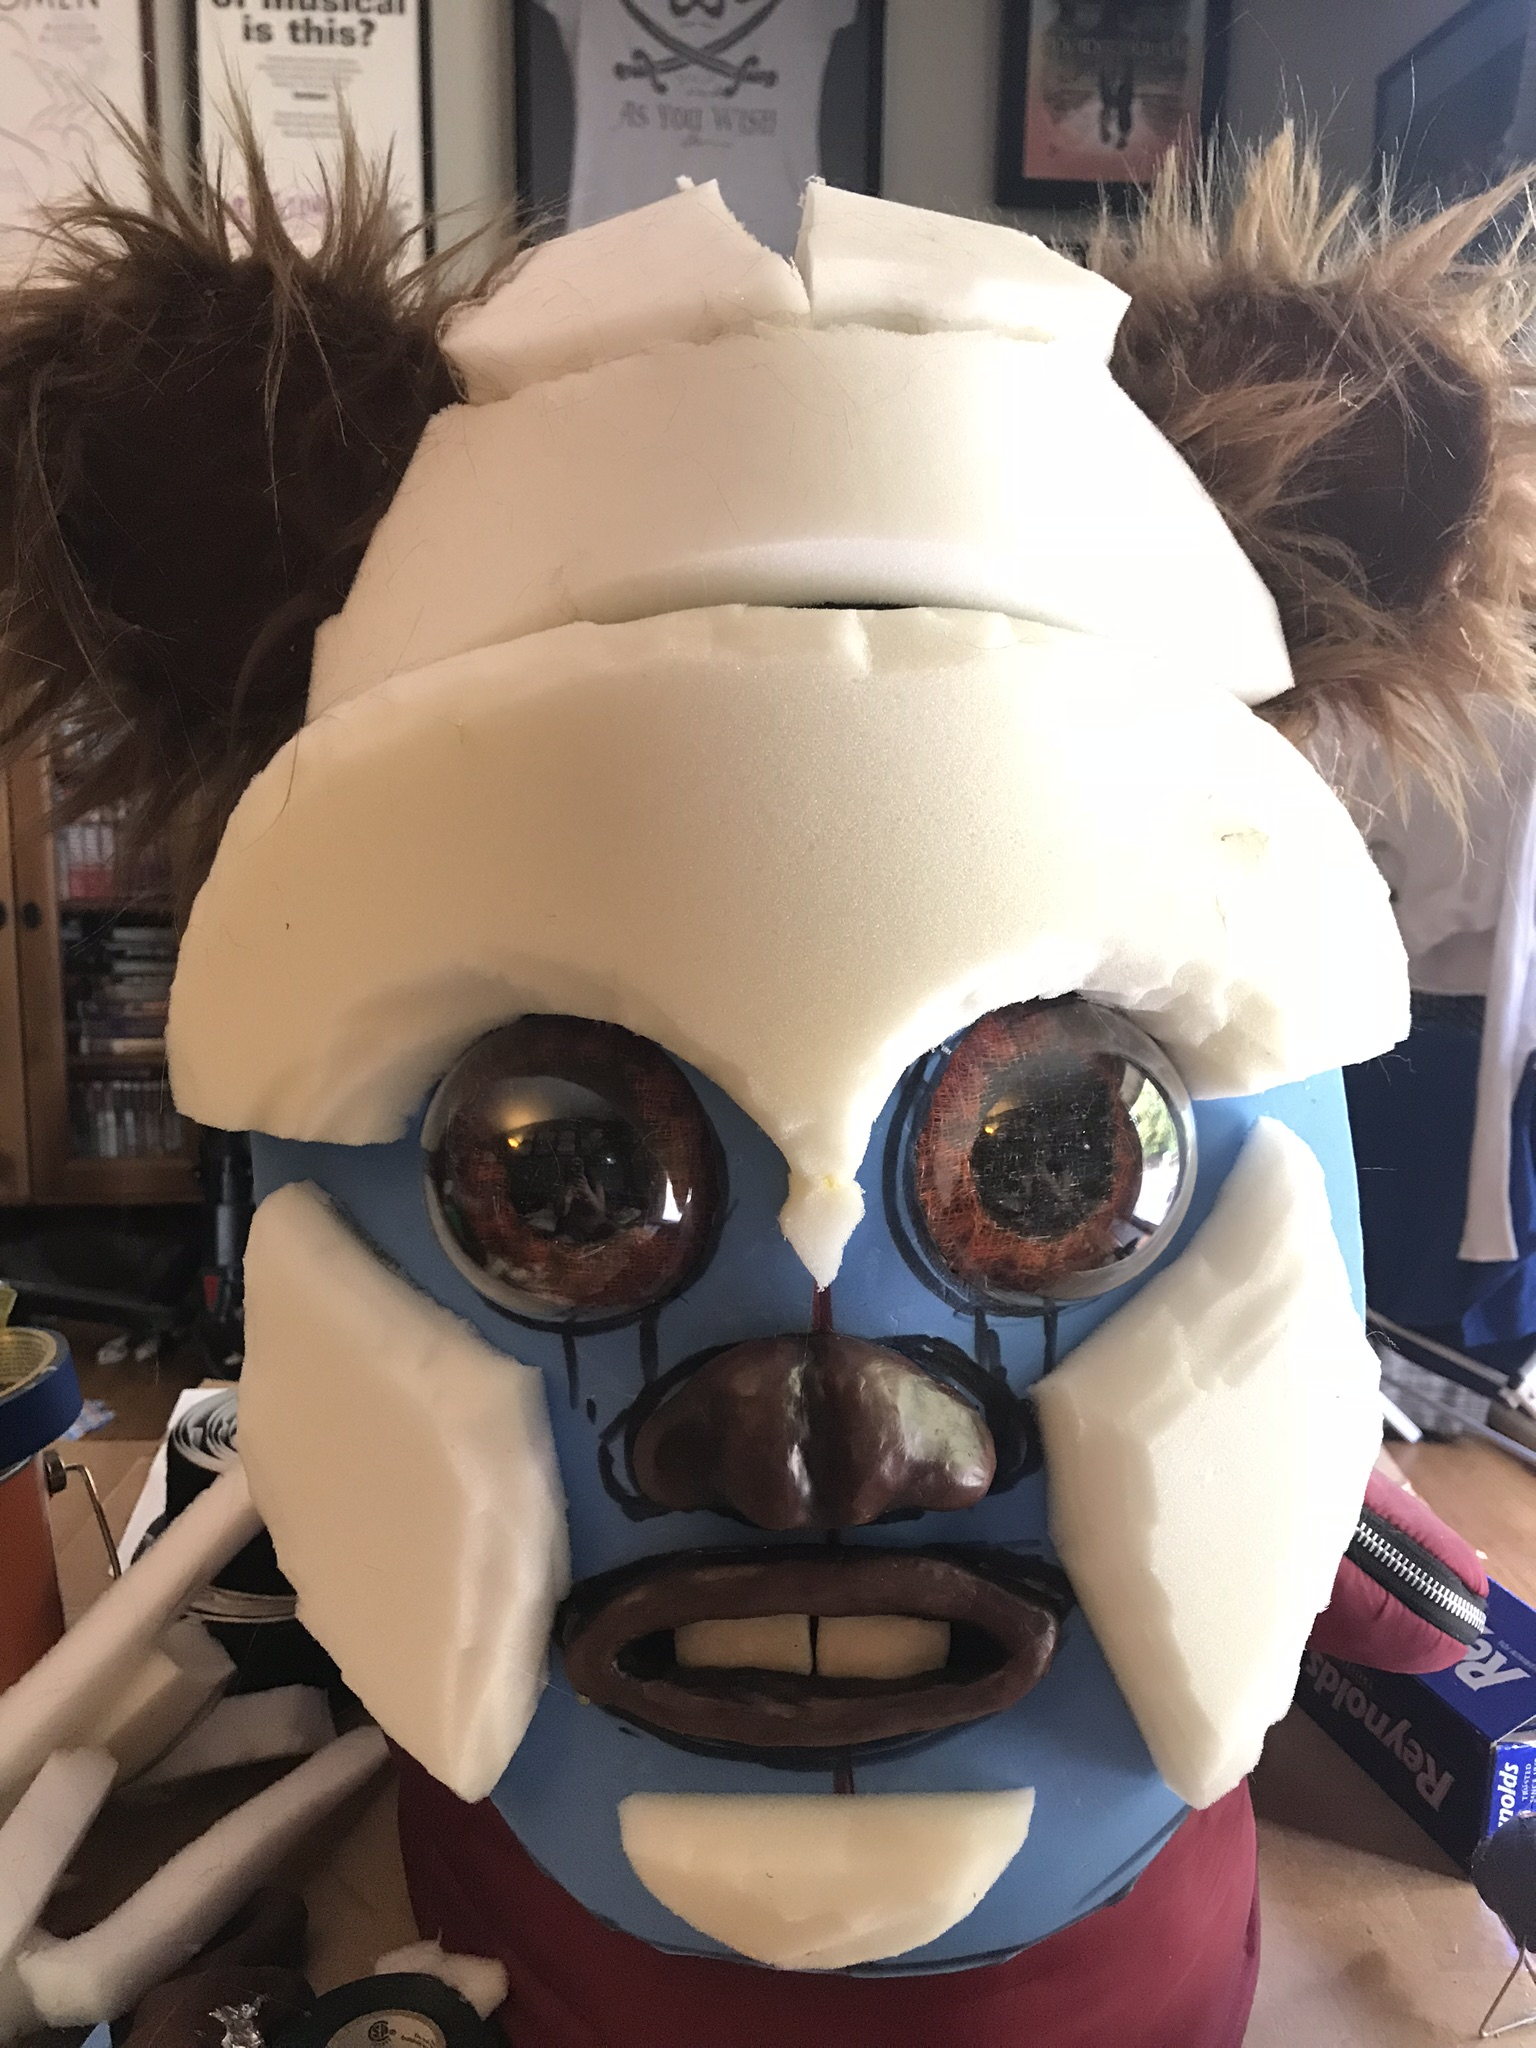 Ewok head with foam attached for structure